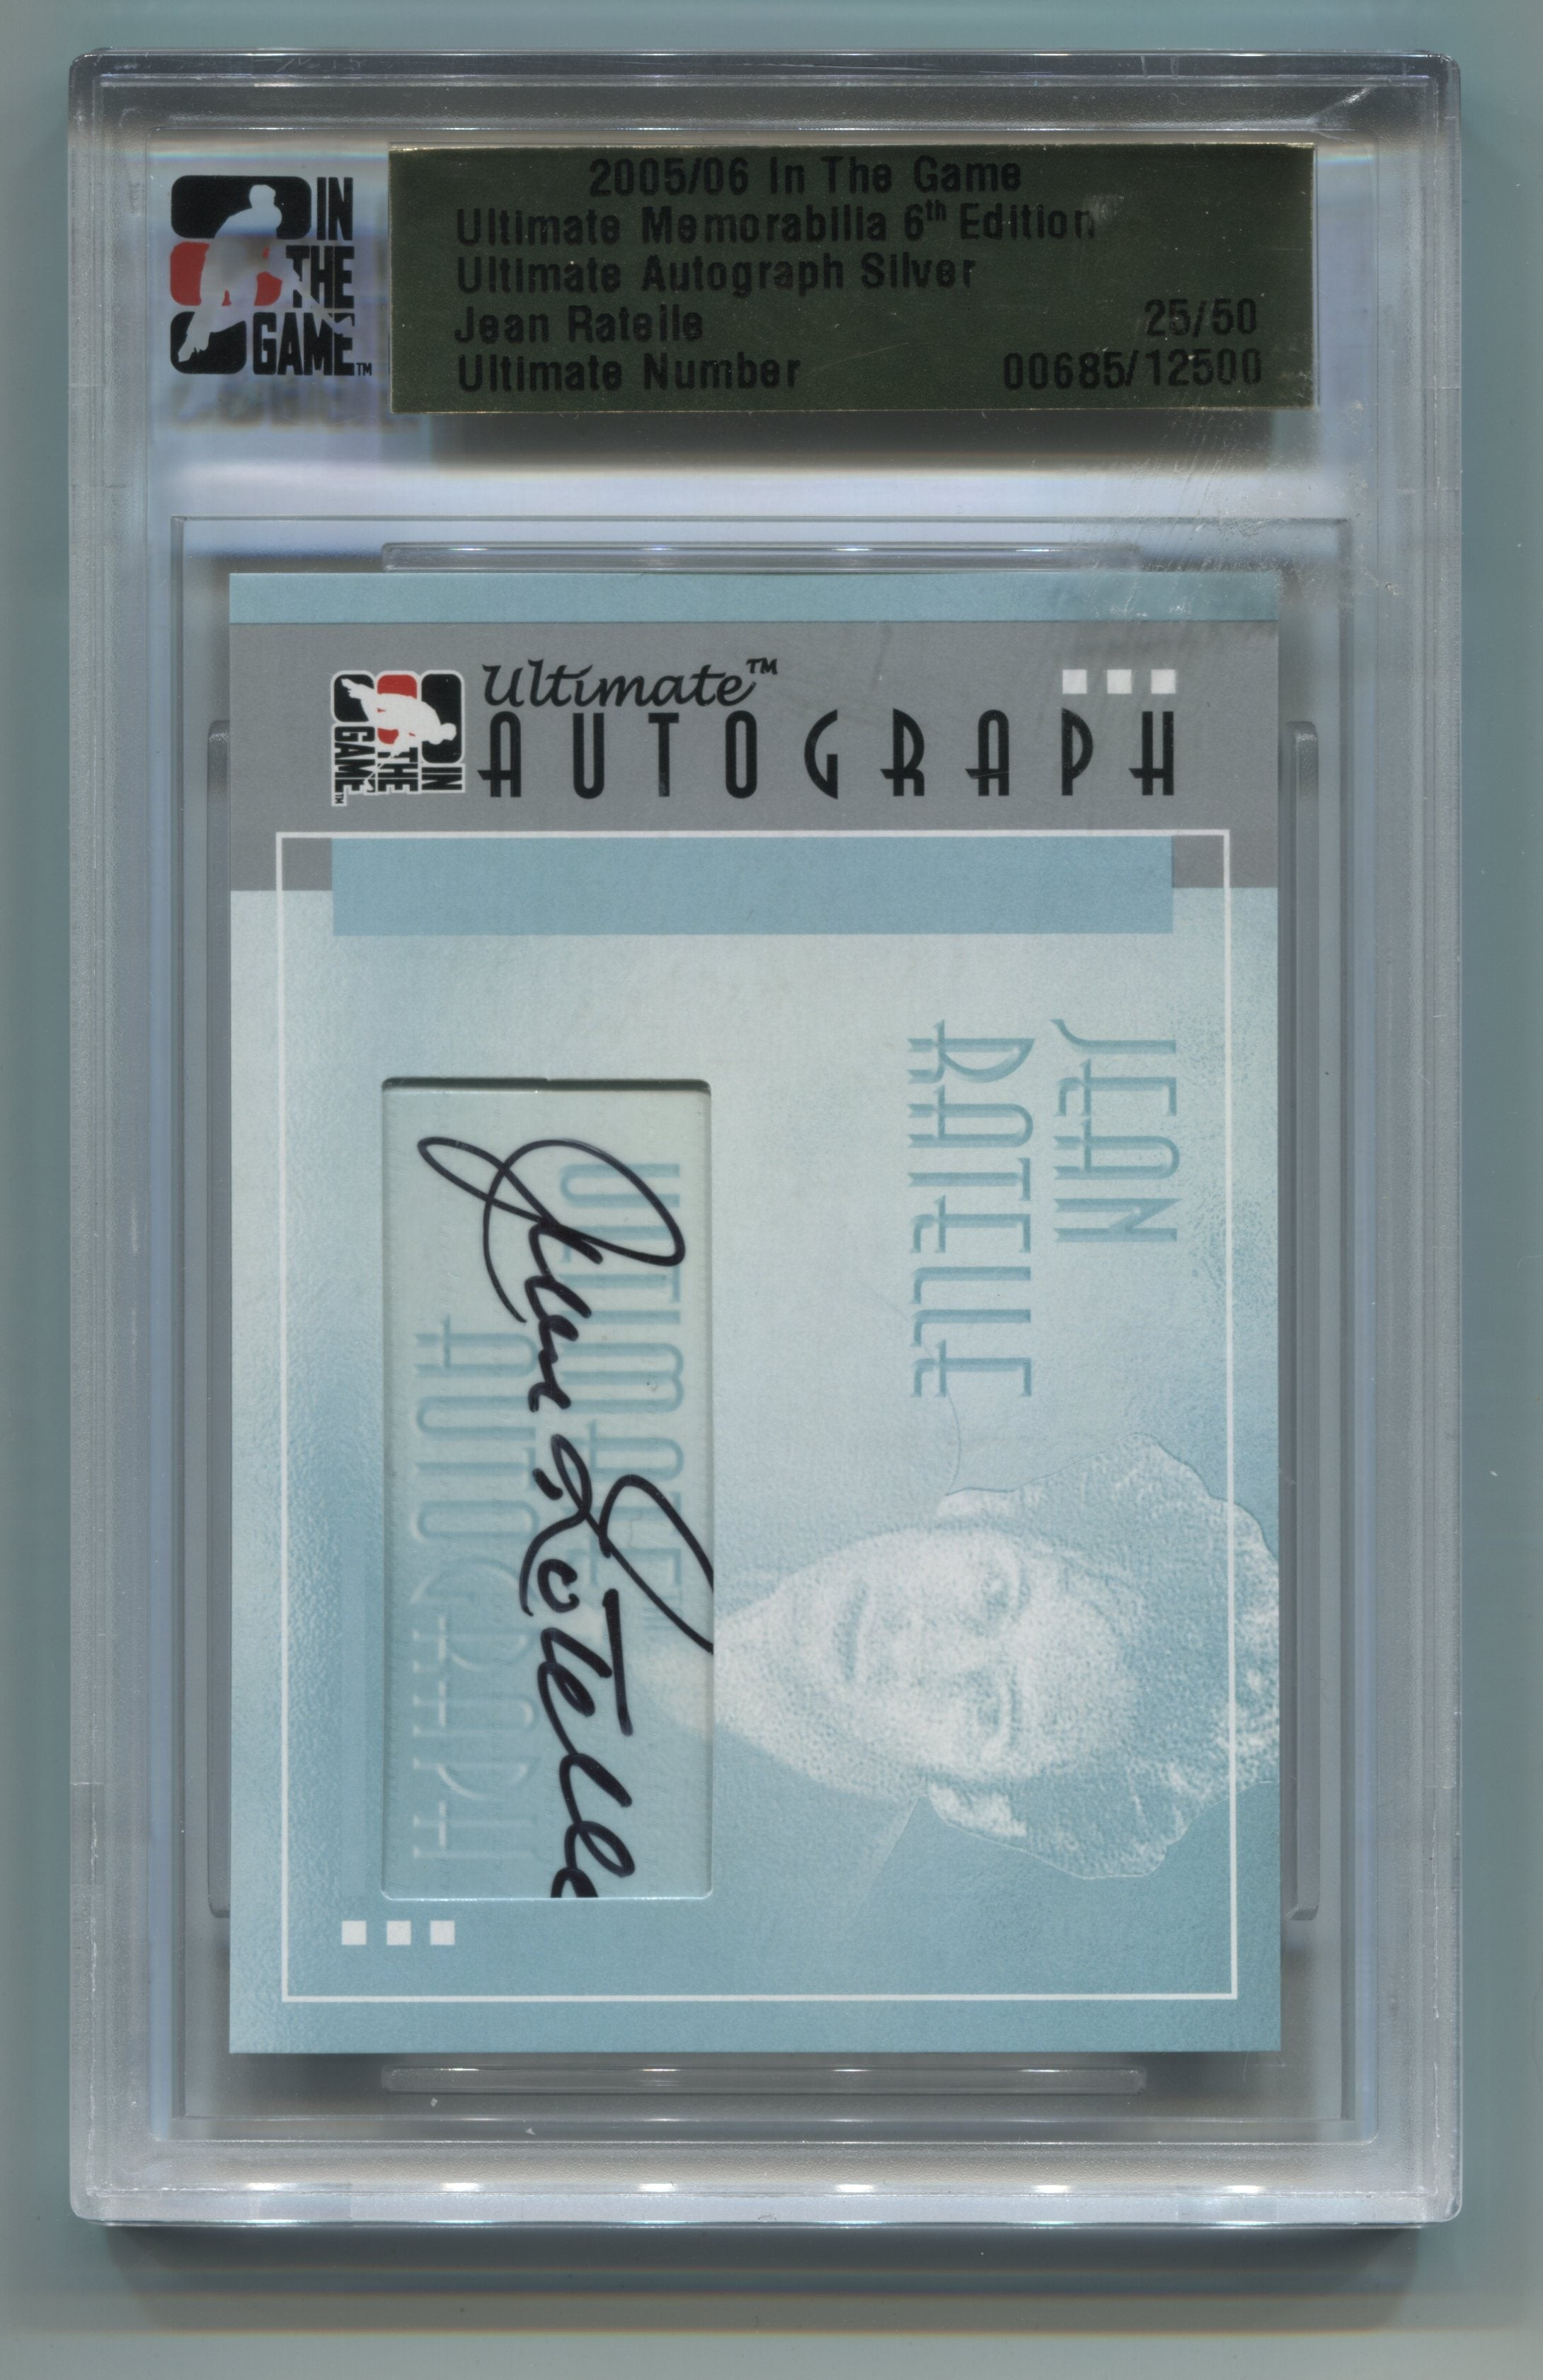 2005-06 ITG Ultimate Memorabilia Ultimate Autograph Silver Jean Ratelle #25/50 | Eastridge Sports Cards